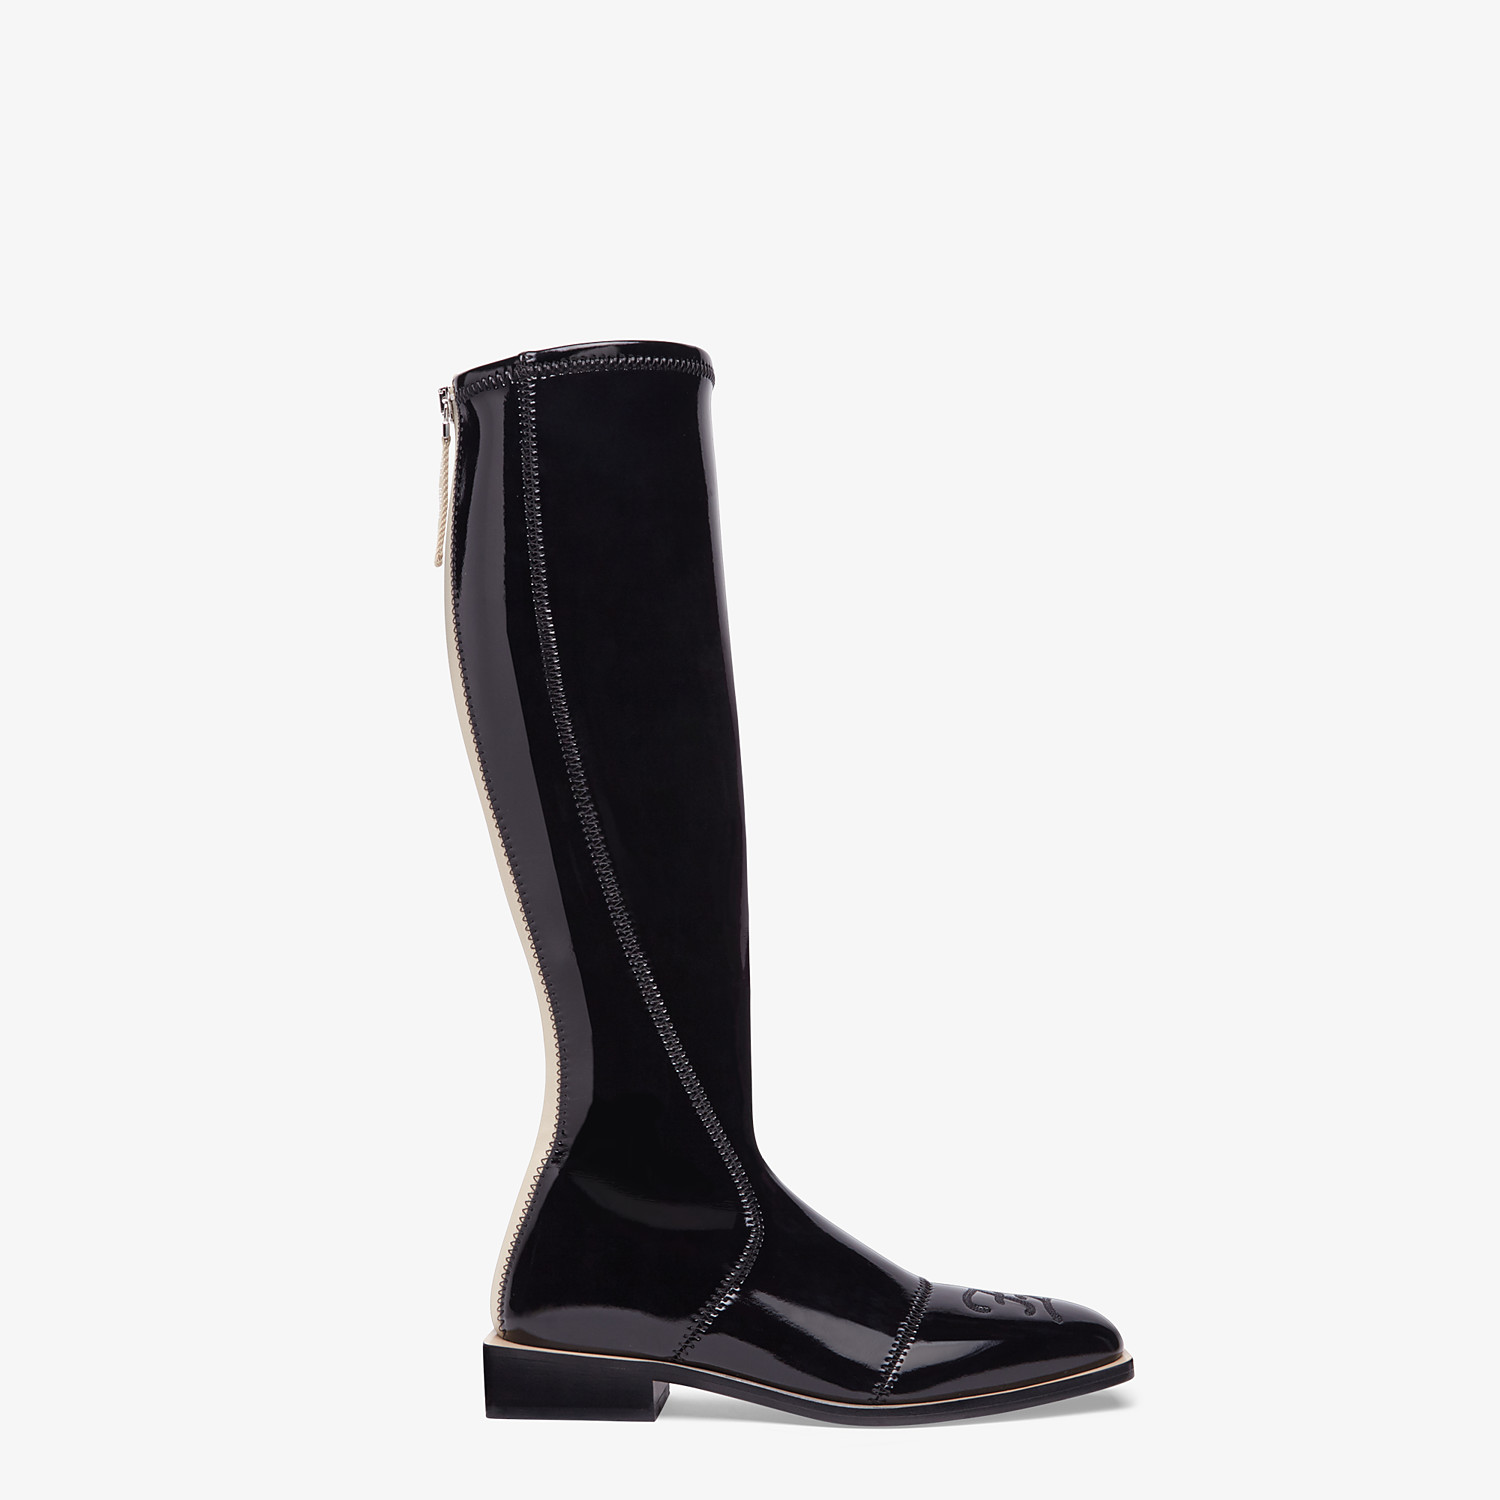 FENDI BOOTS - Glossy black neoprene boots - view 1 detail